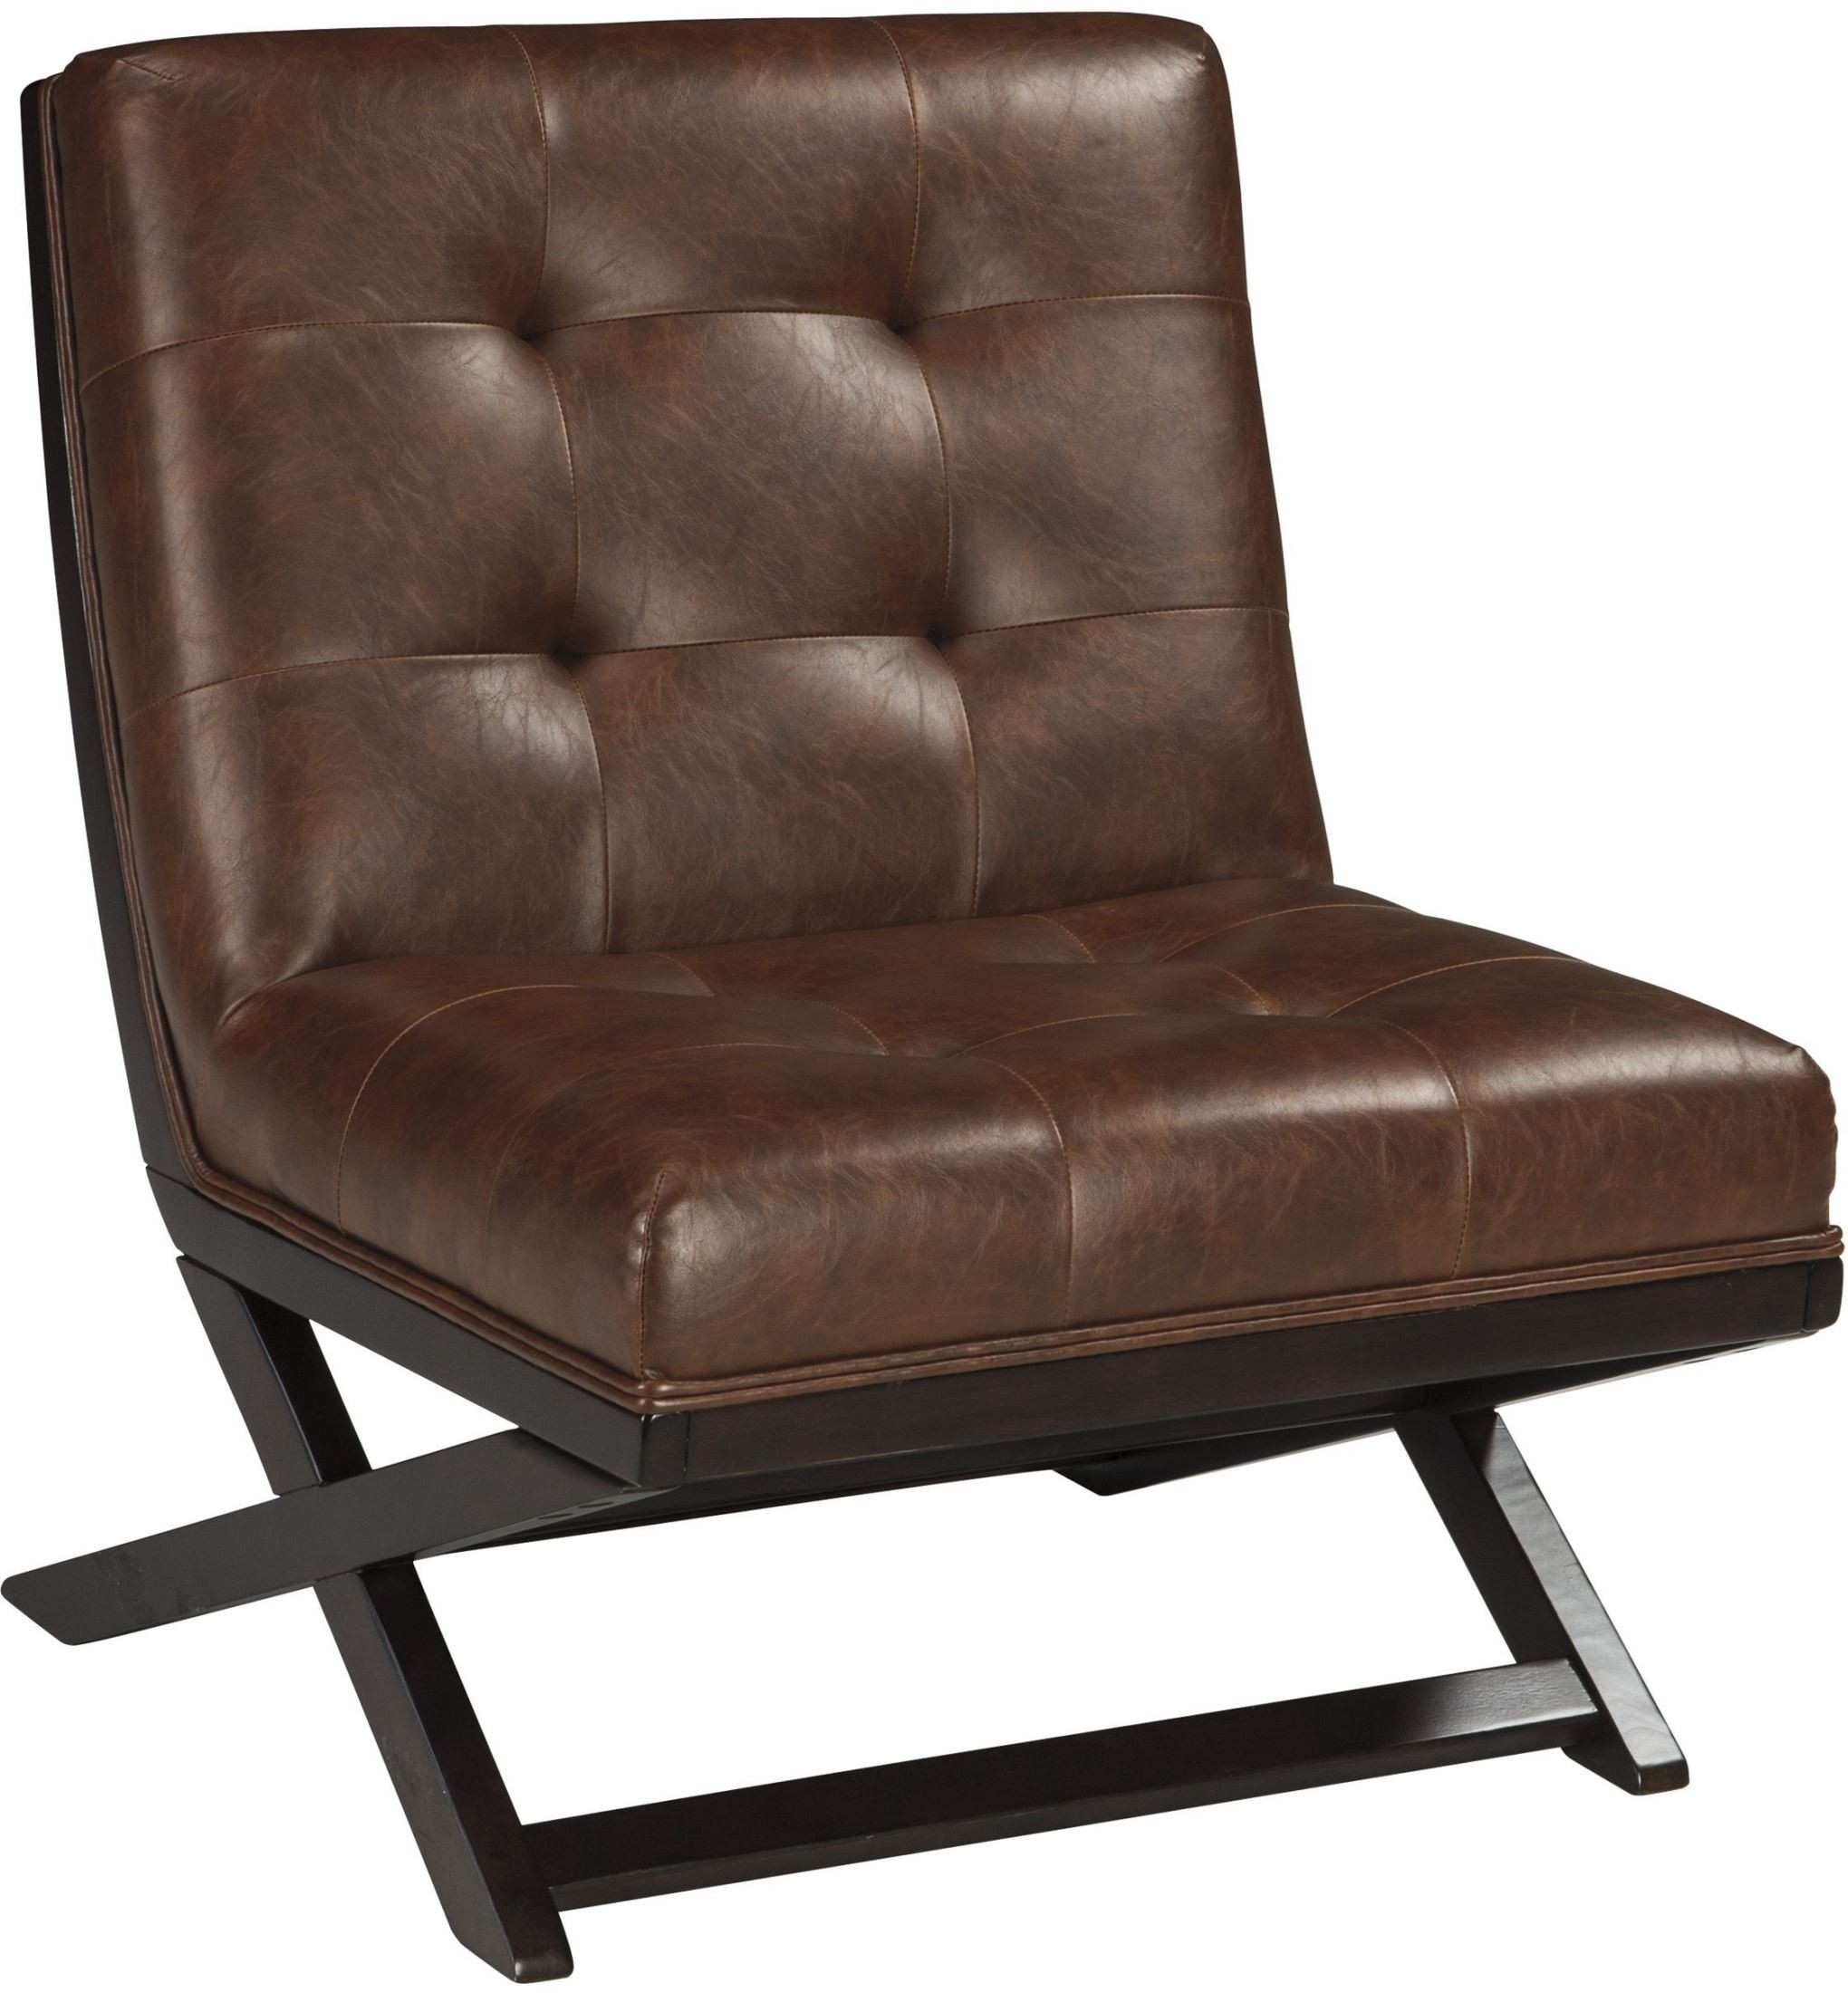 Sidewinder Brown Accent Chair from Ashley  Coleman Furniture